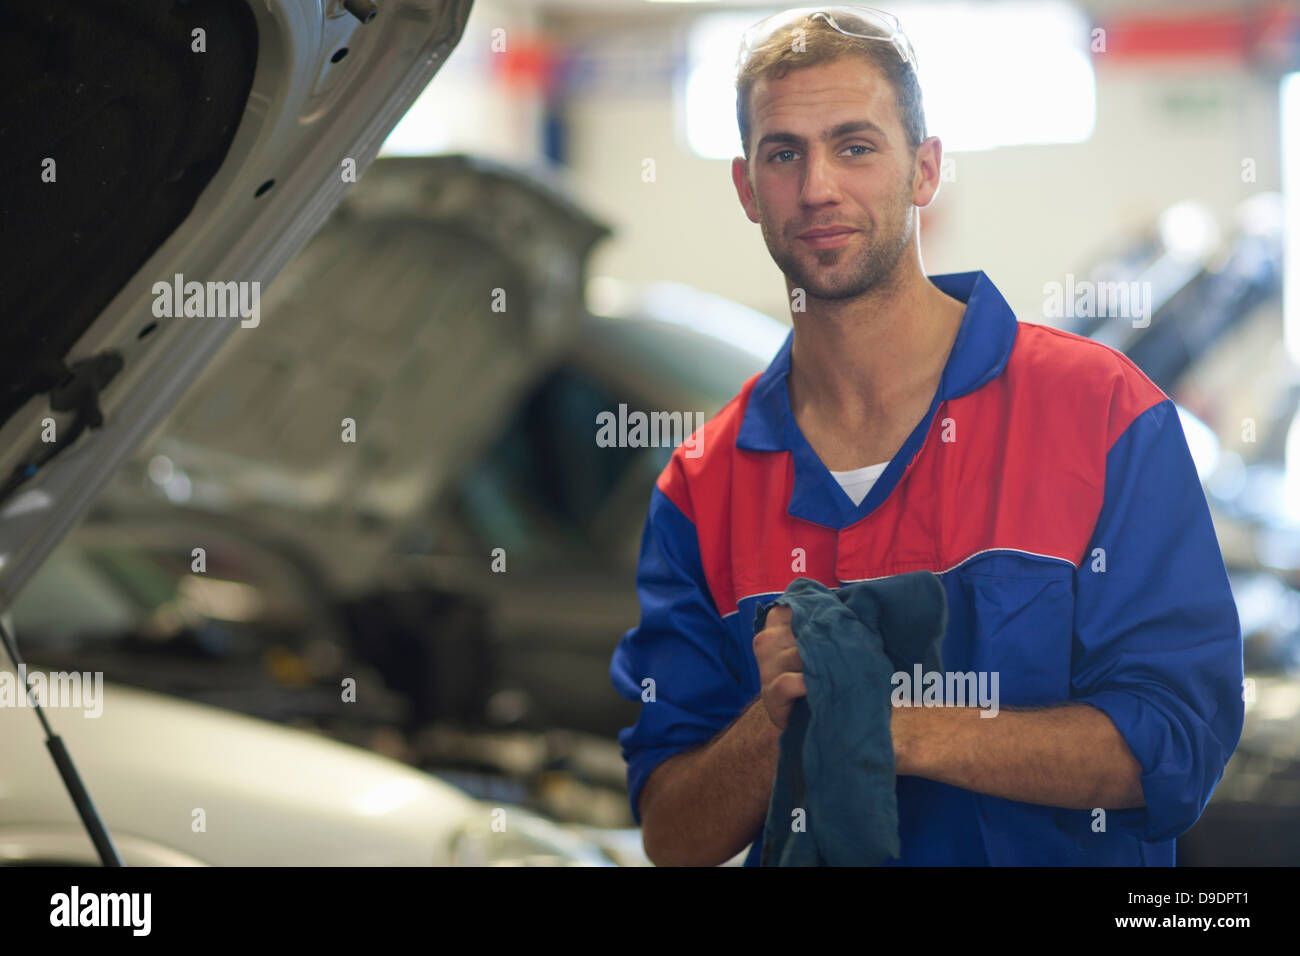 Car mechanic on completion of job - Stock Image